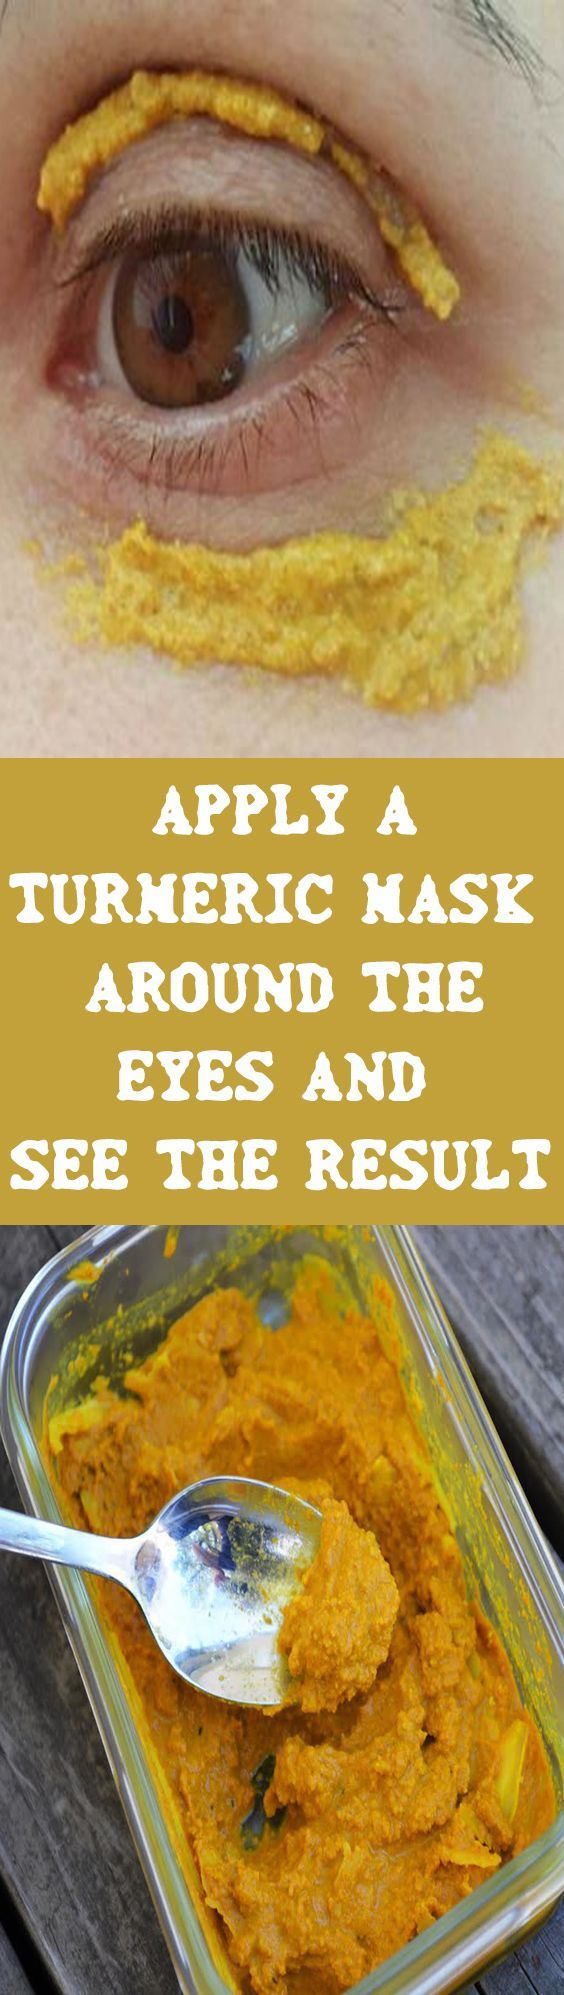 Skin Care Tips That Everyone Should Know | Turmeric mask ...